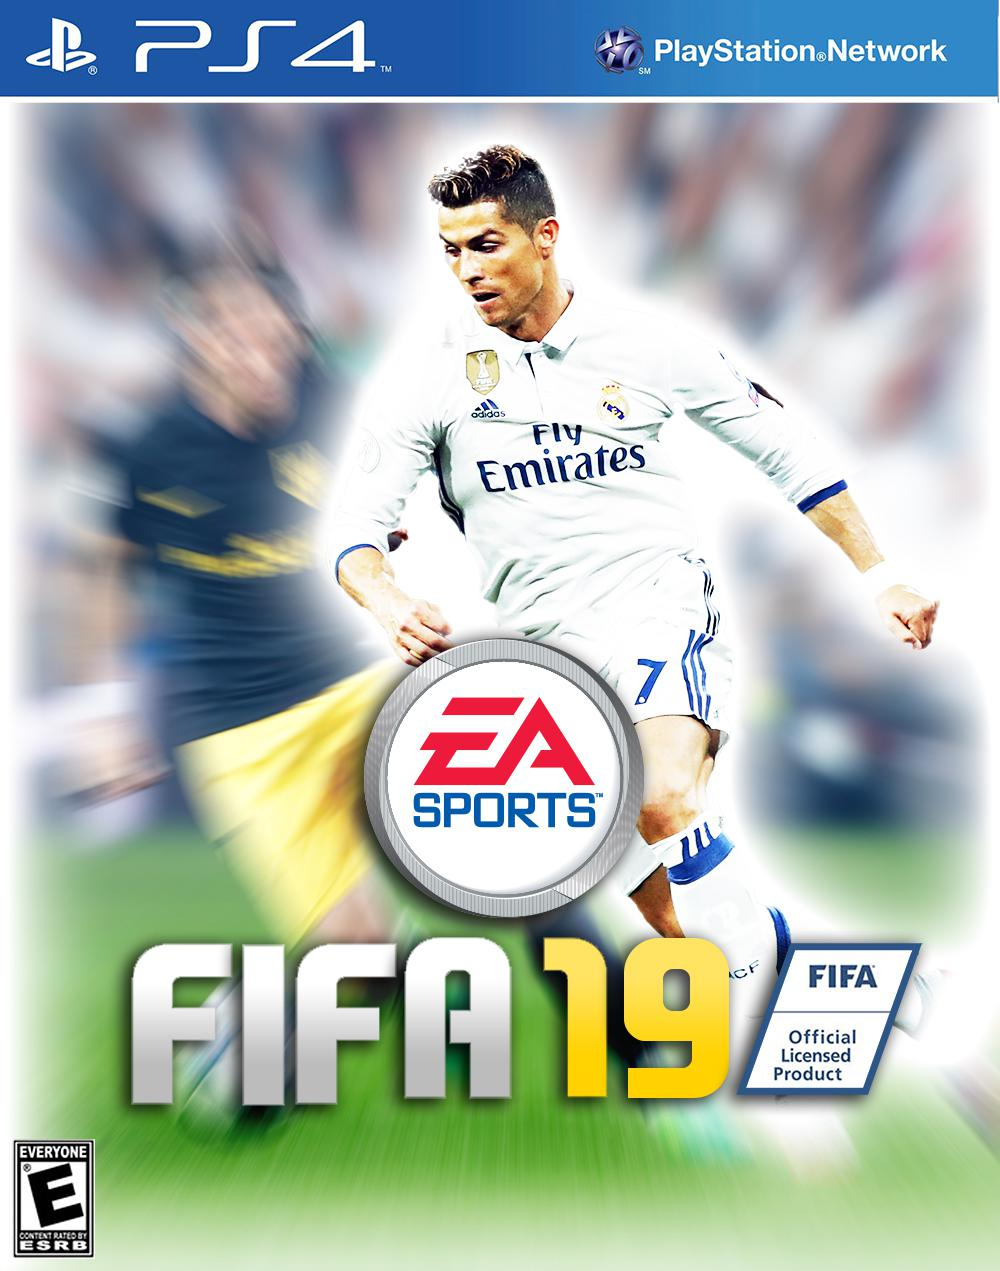 Our Mocked Up Version Of The Fifa  Cover With Ronnie